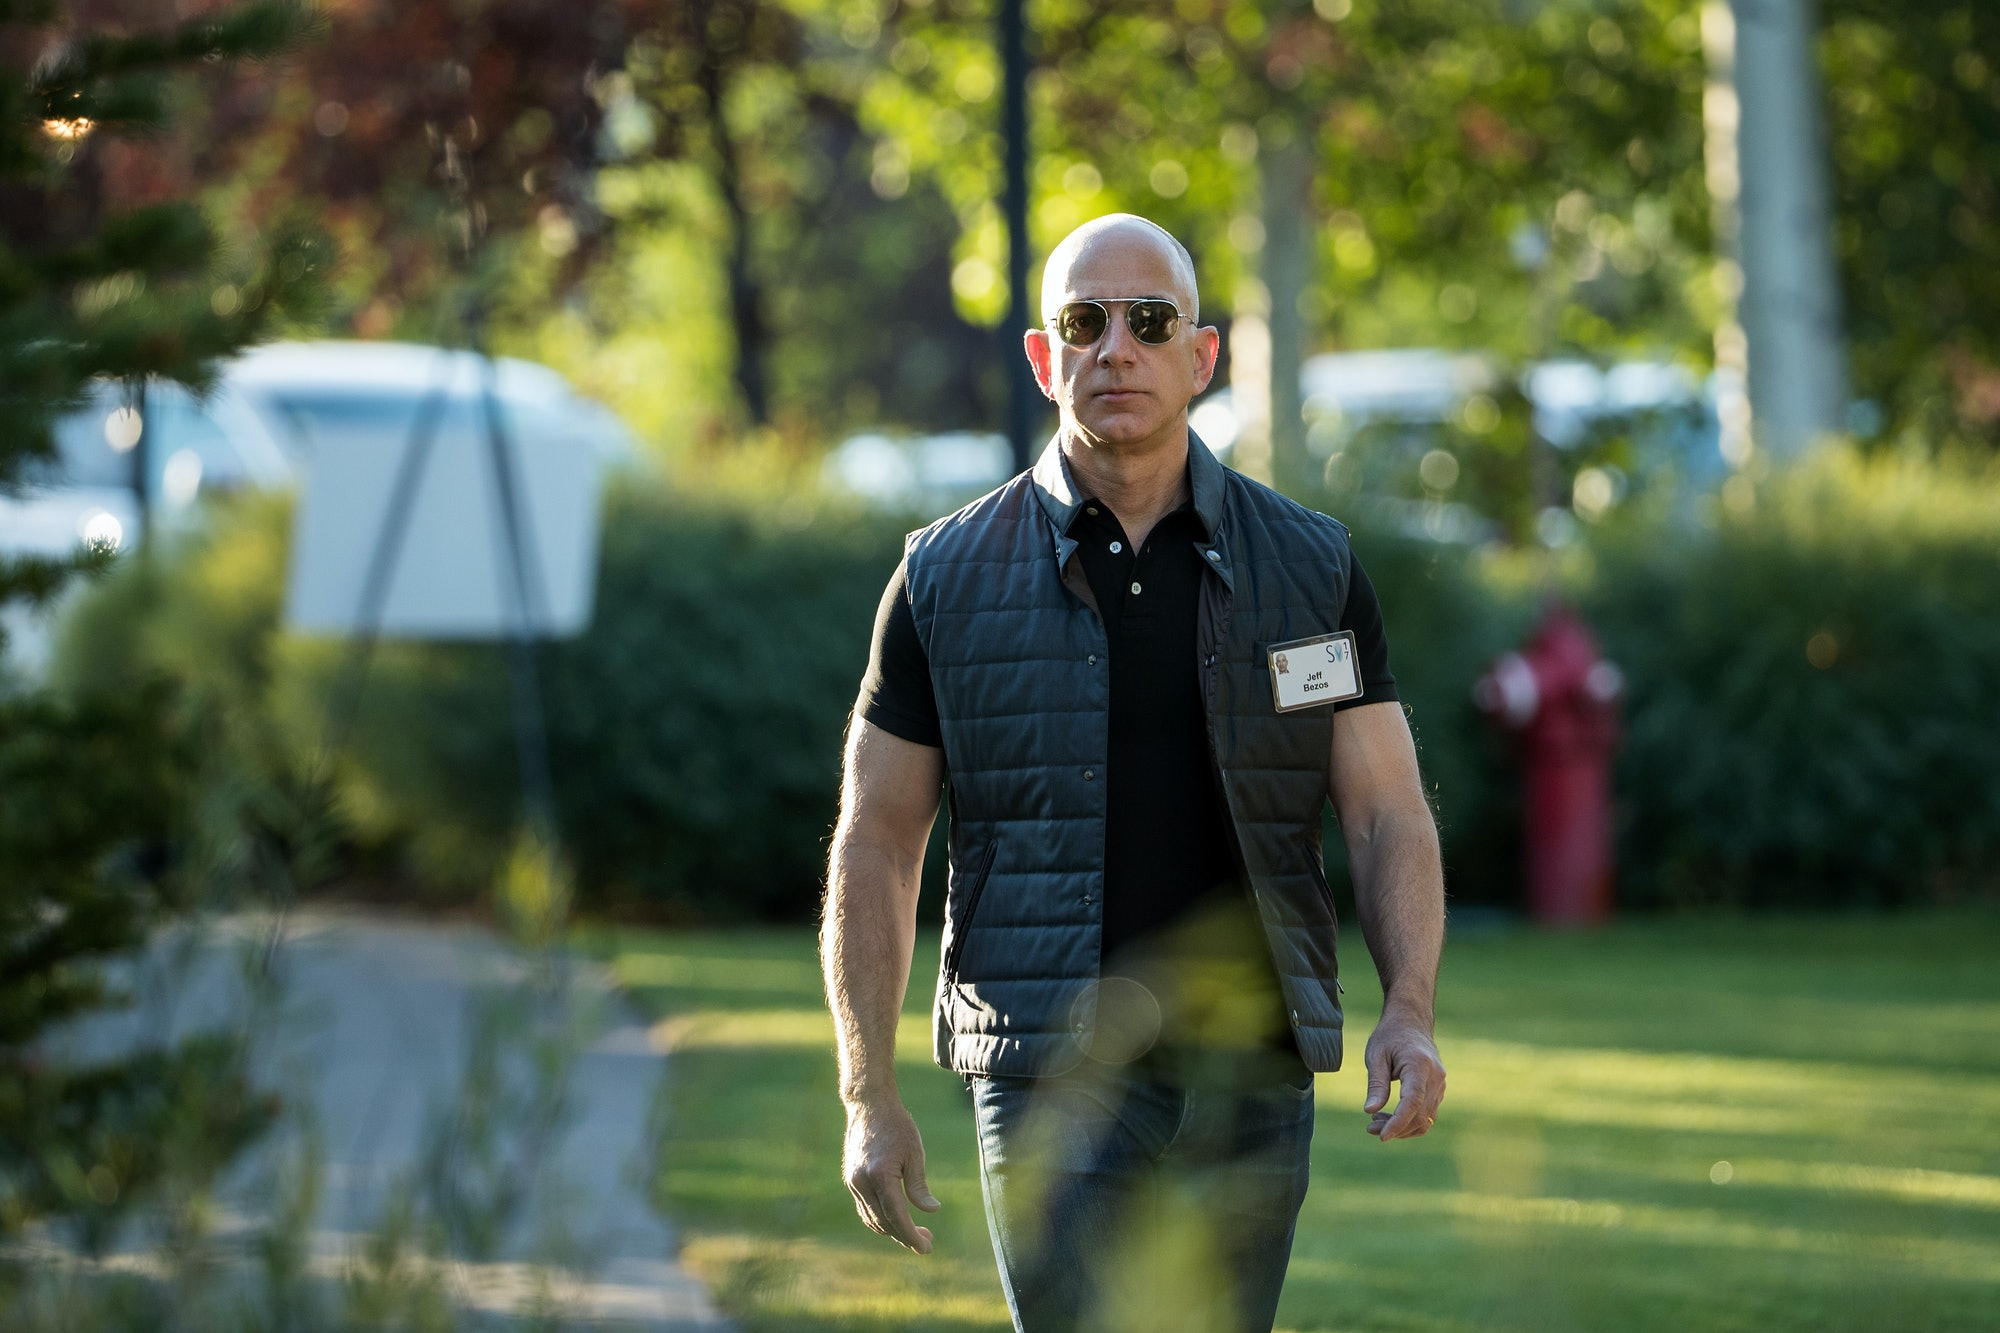 SUN VALLEY, ID - JULY 13: Jeff Bezos, chief executive officer of Amazon, arrives for the third day of the annual Allen & Company Sun Valley Conference, July 13,2017in Sun Valley, Idaho. Every July, some of the world's most wealthy and powerful businesspeople from the media, finance,technologyand political spheres converge at the Sun Valley Resort for the exclusive weeklong conference. (Photo by Drew Angerer/Getty Images)